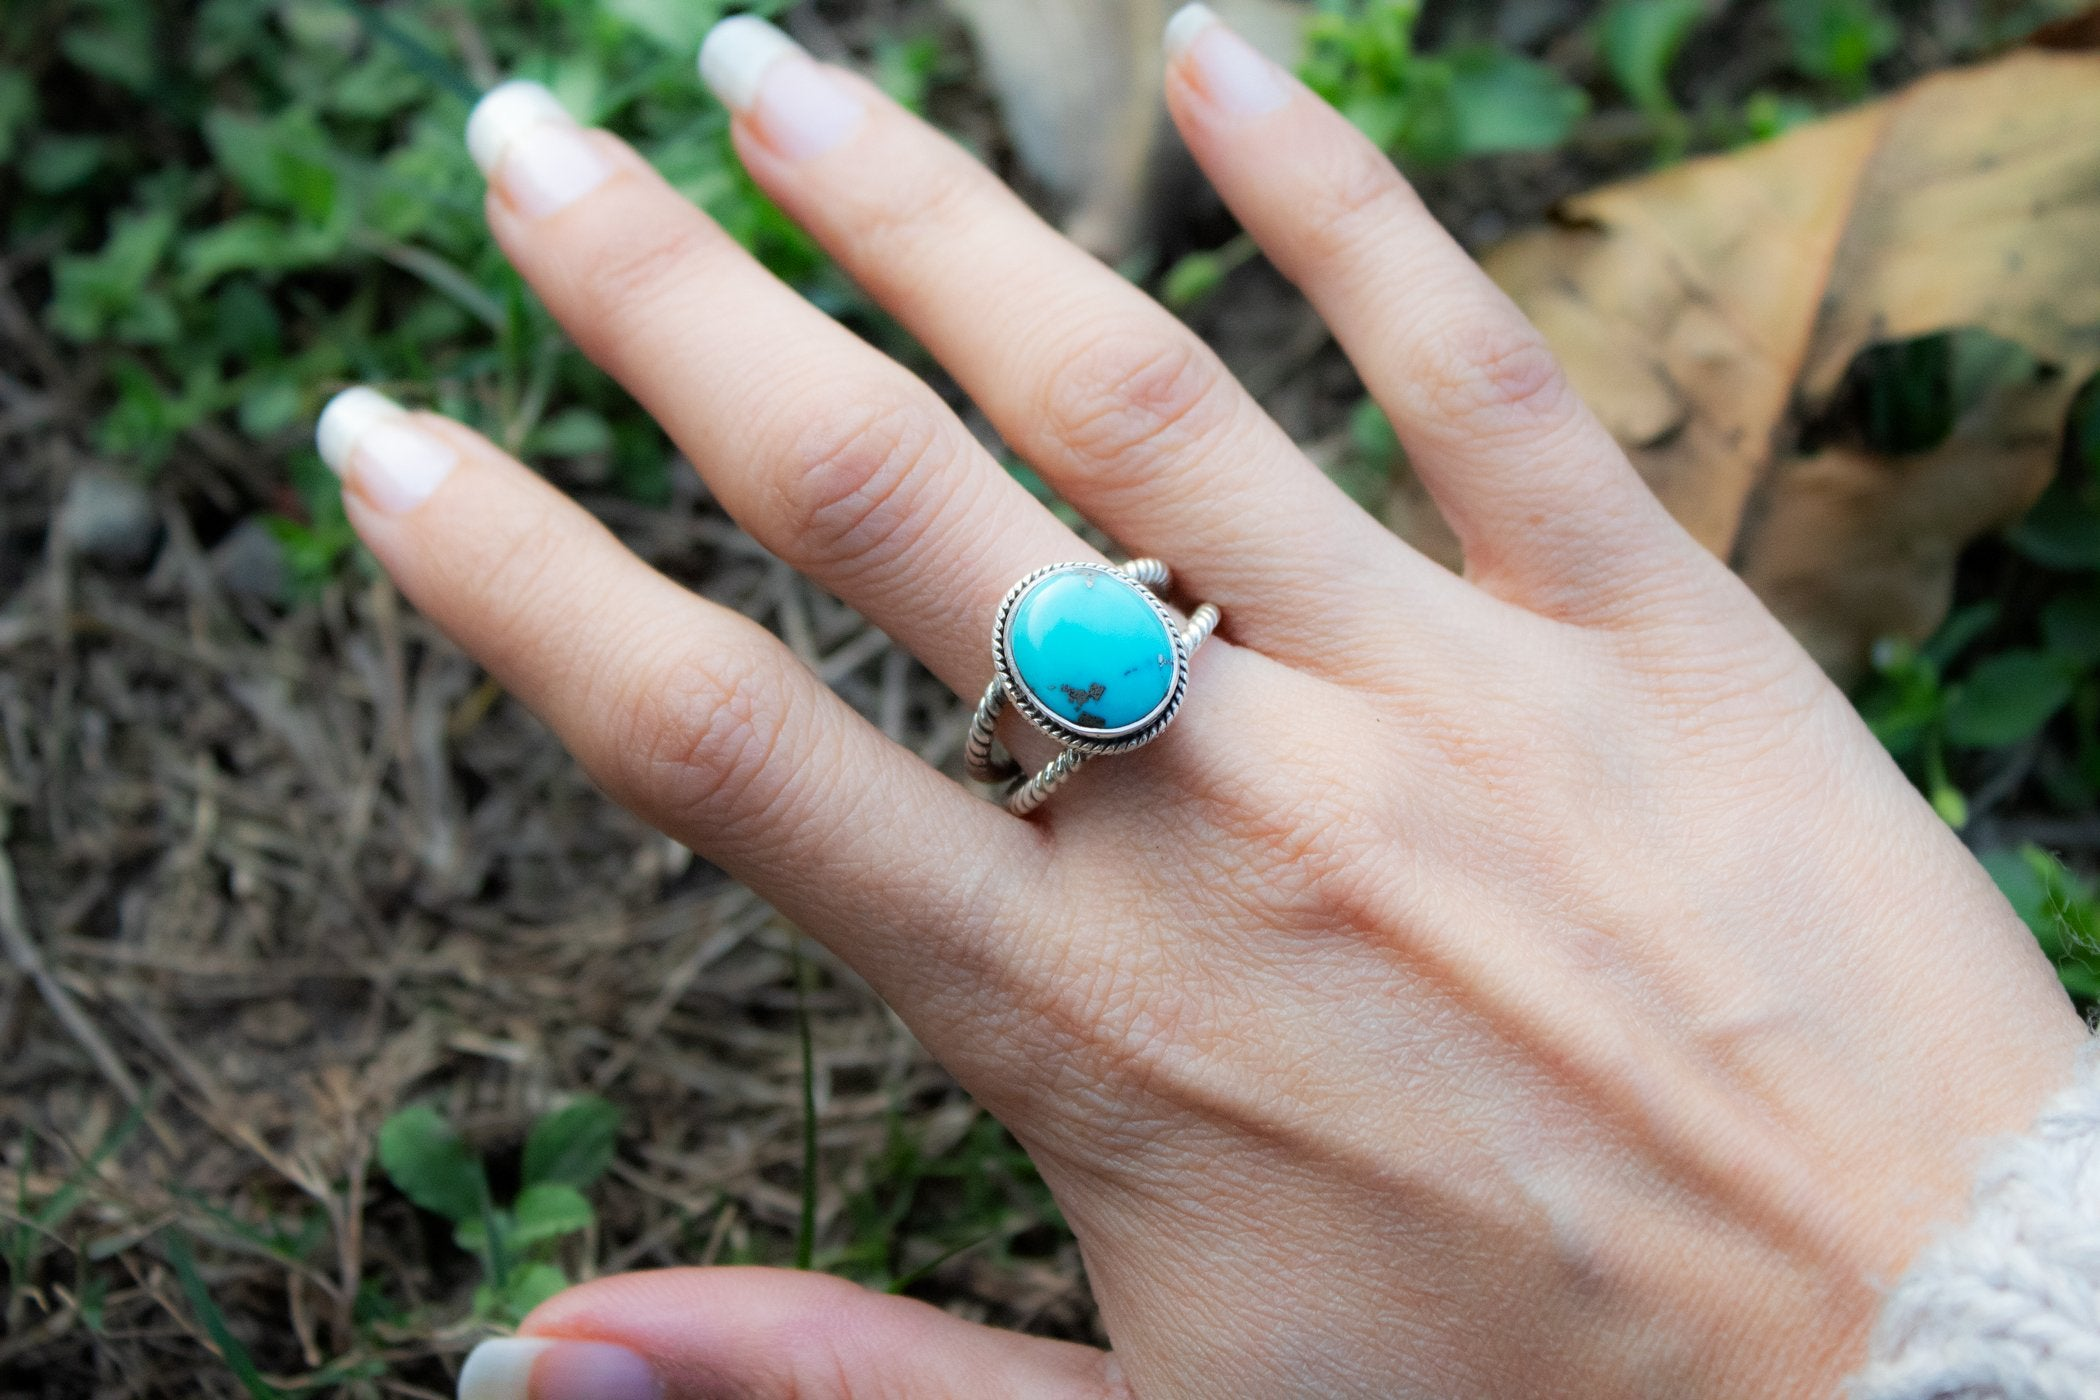 Rope Band Arizona Turquoise Dainty Ring AR-2043 - Its Ambra